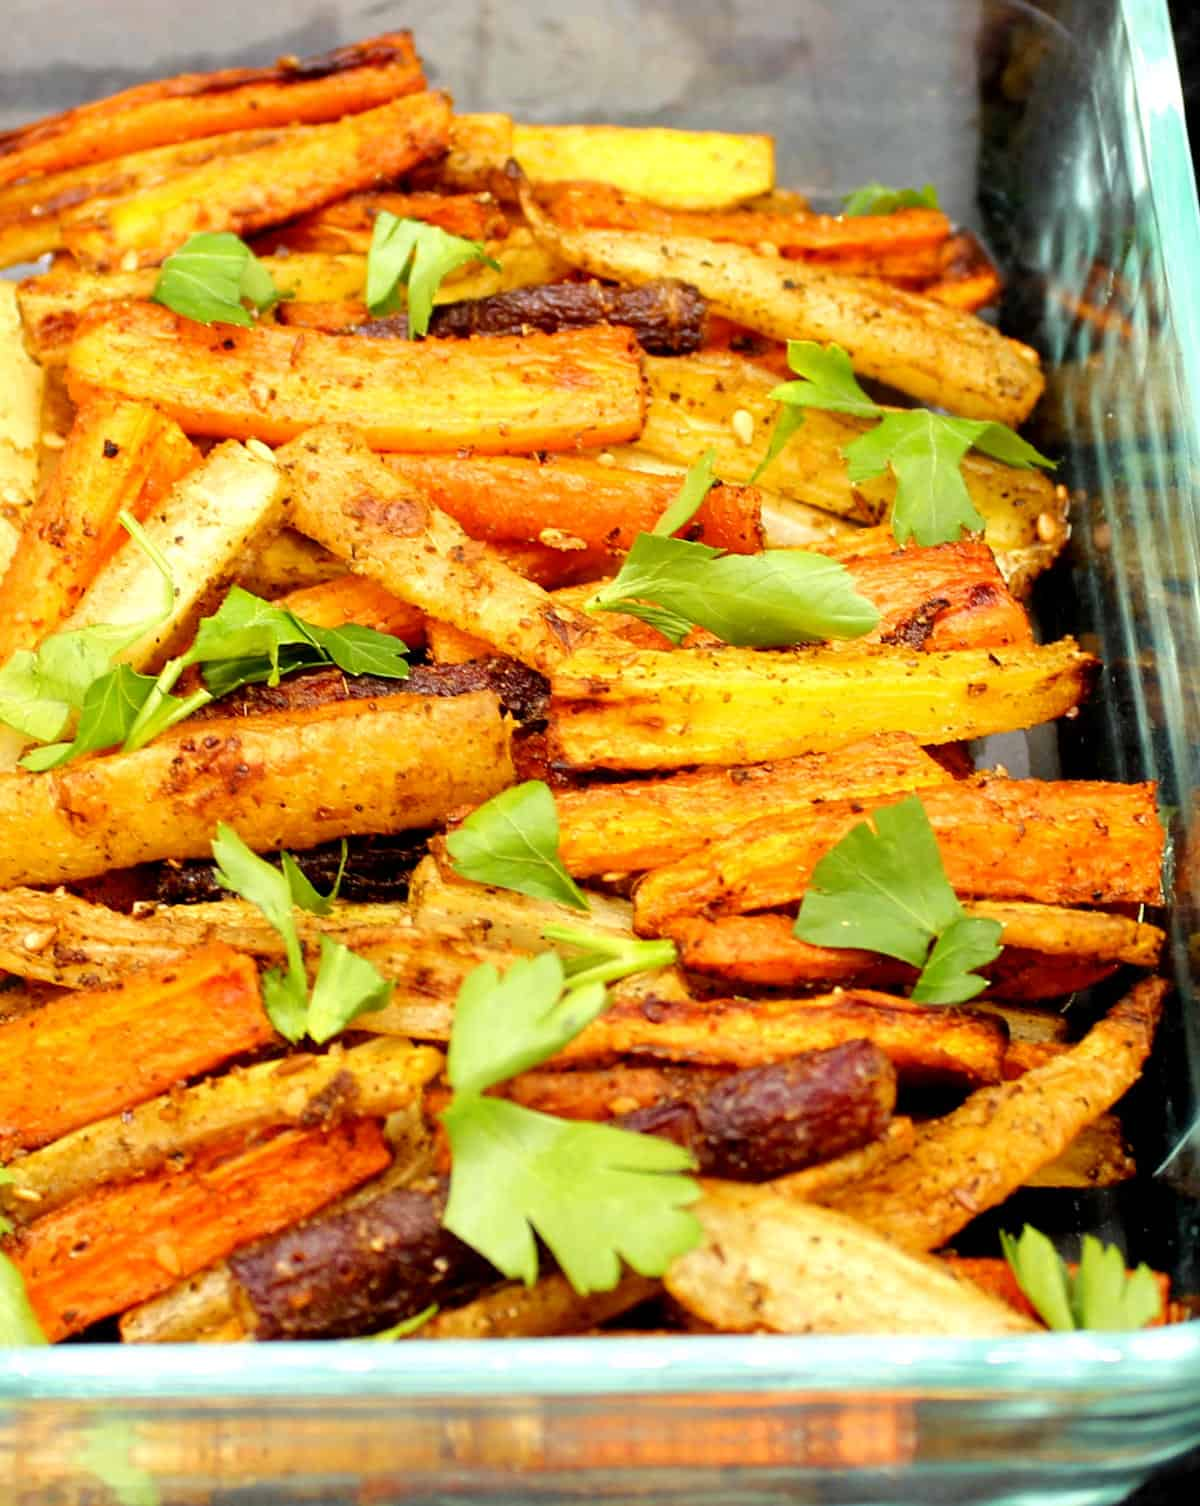 Closeup of roasted carrots with zaatar in a glass baking dish with parsley garnish.